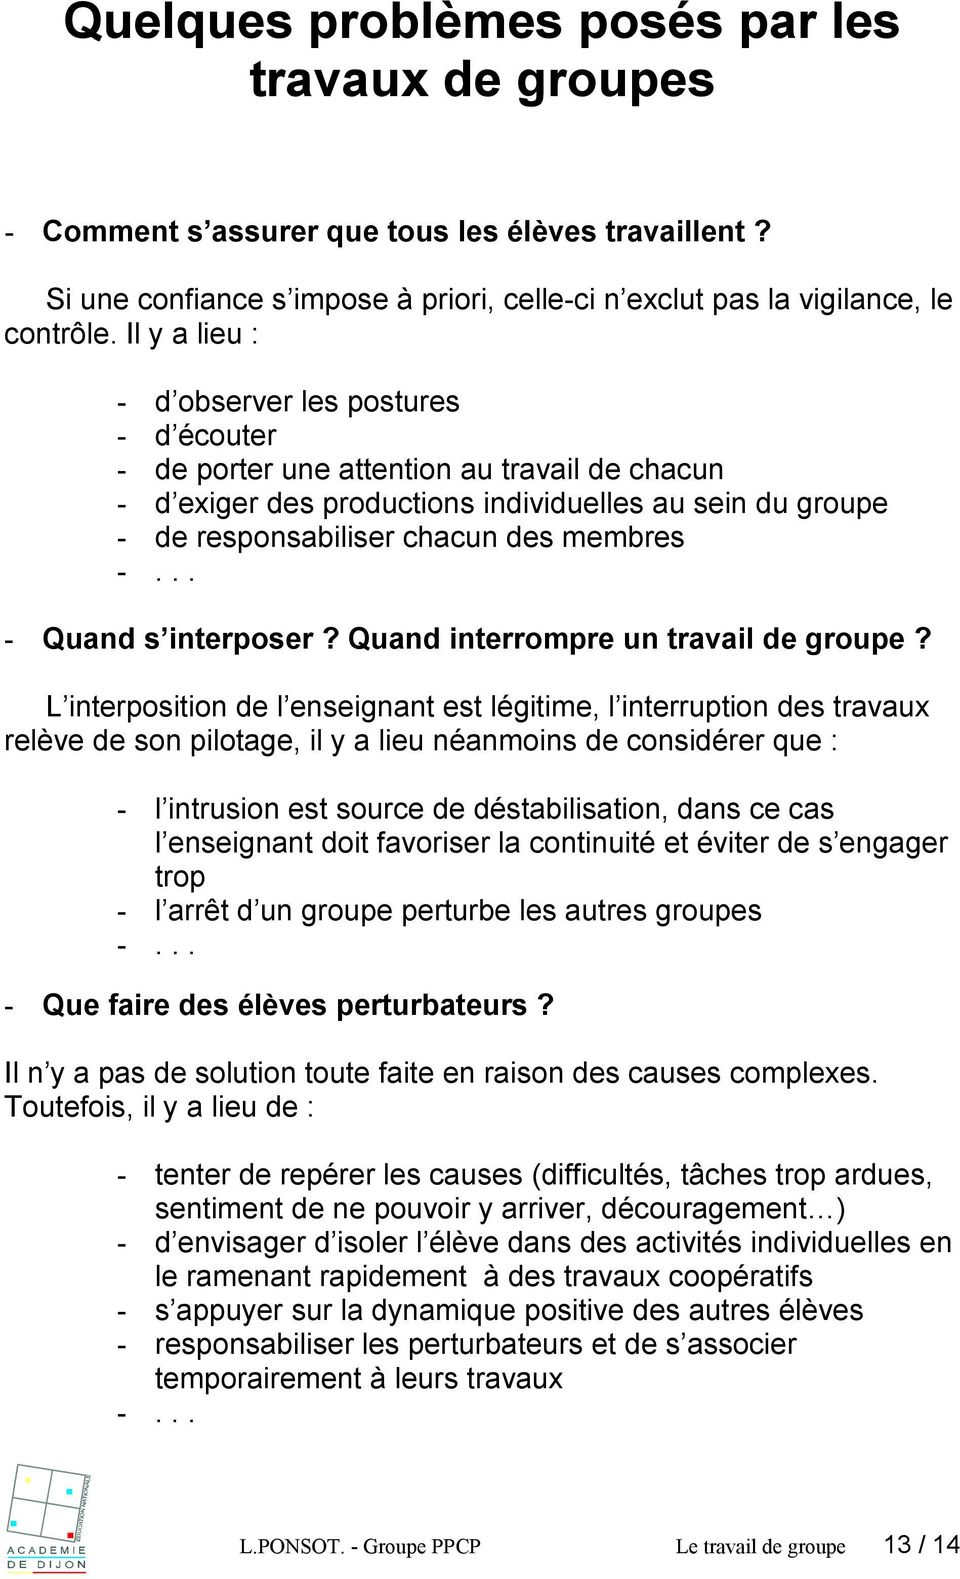 Quand s interposer? Quand interrompre un travail de groupe?